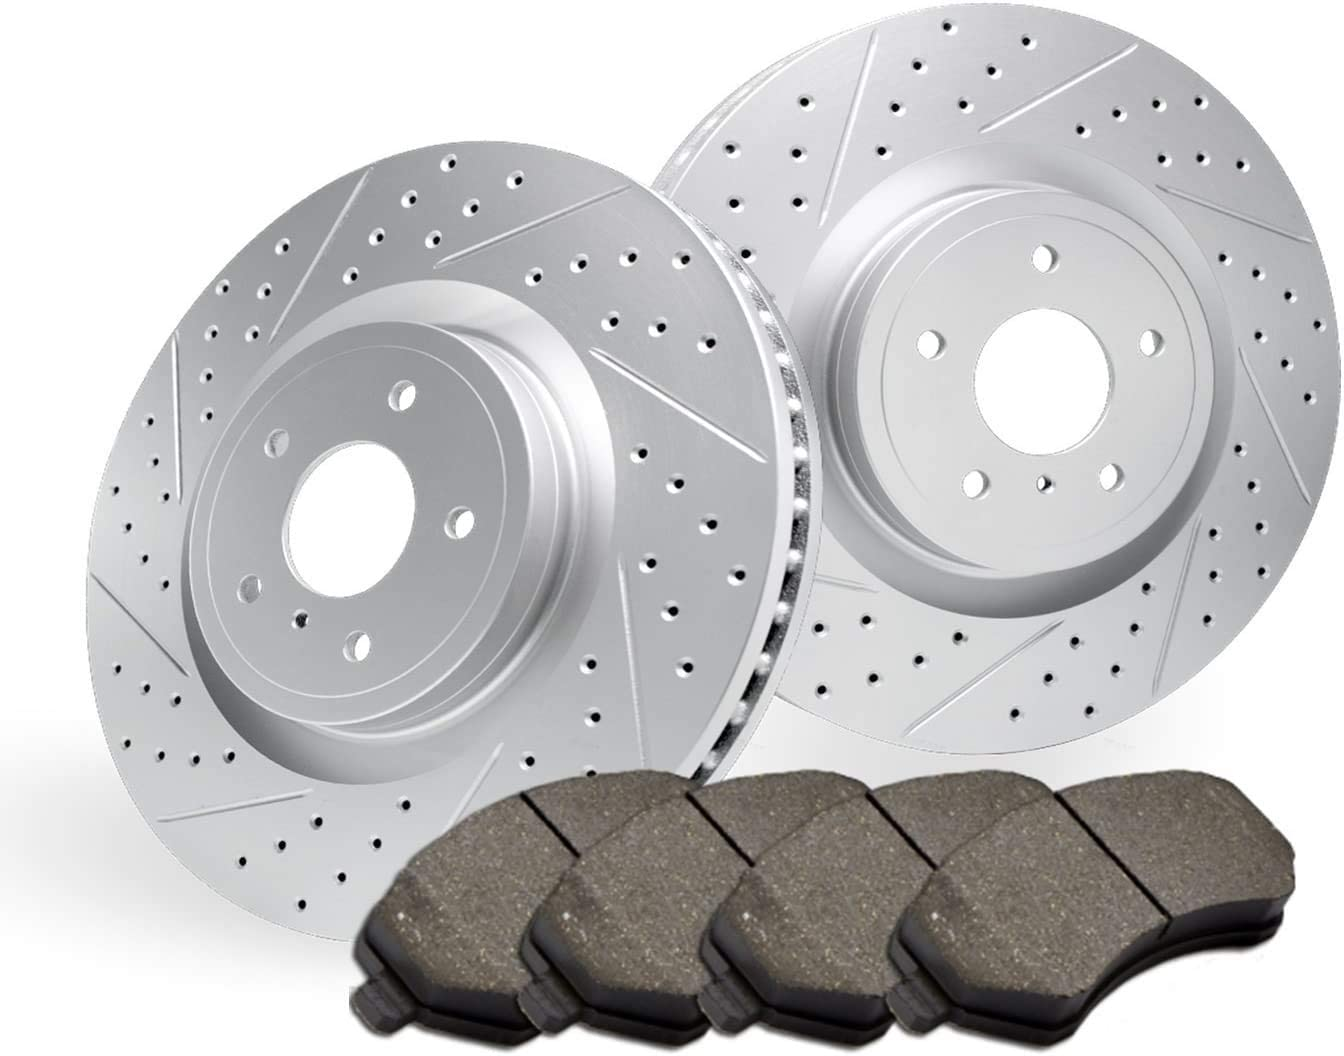 2010 For Dodge Grand Caravan Front Cross Drilled Slotted and Anti Rust Coated Disc Brake Rotors and Ceramic Brake Pads Stirling